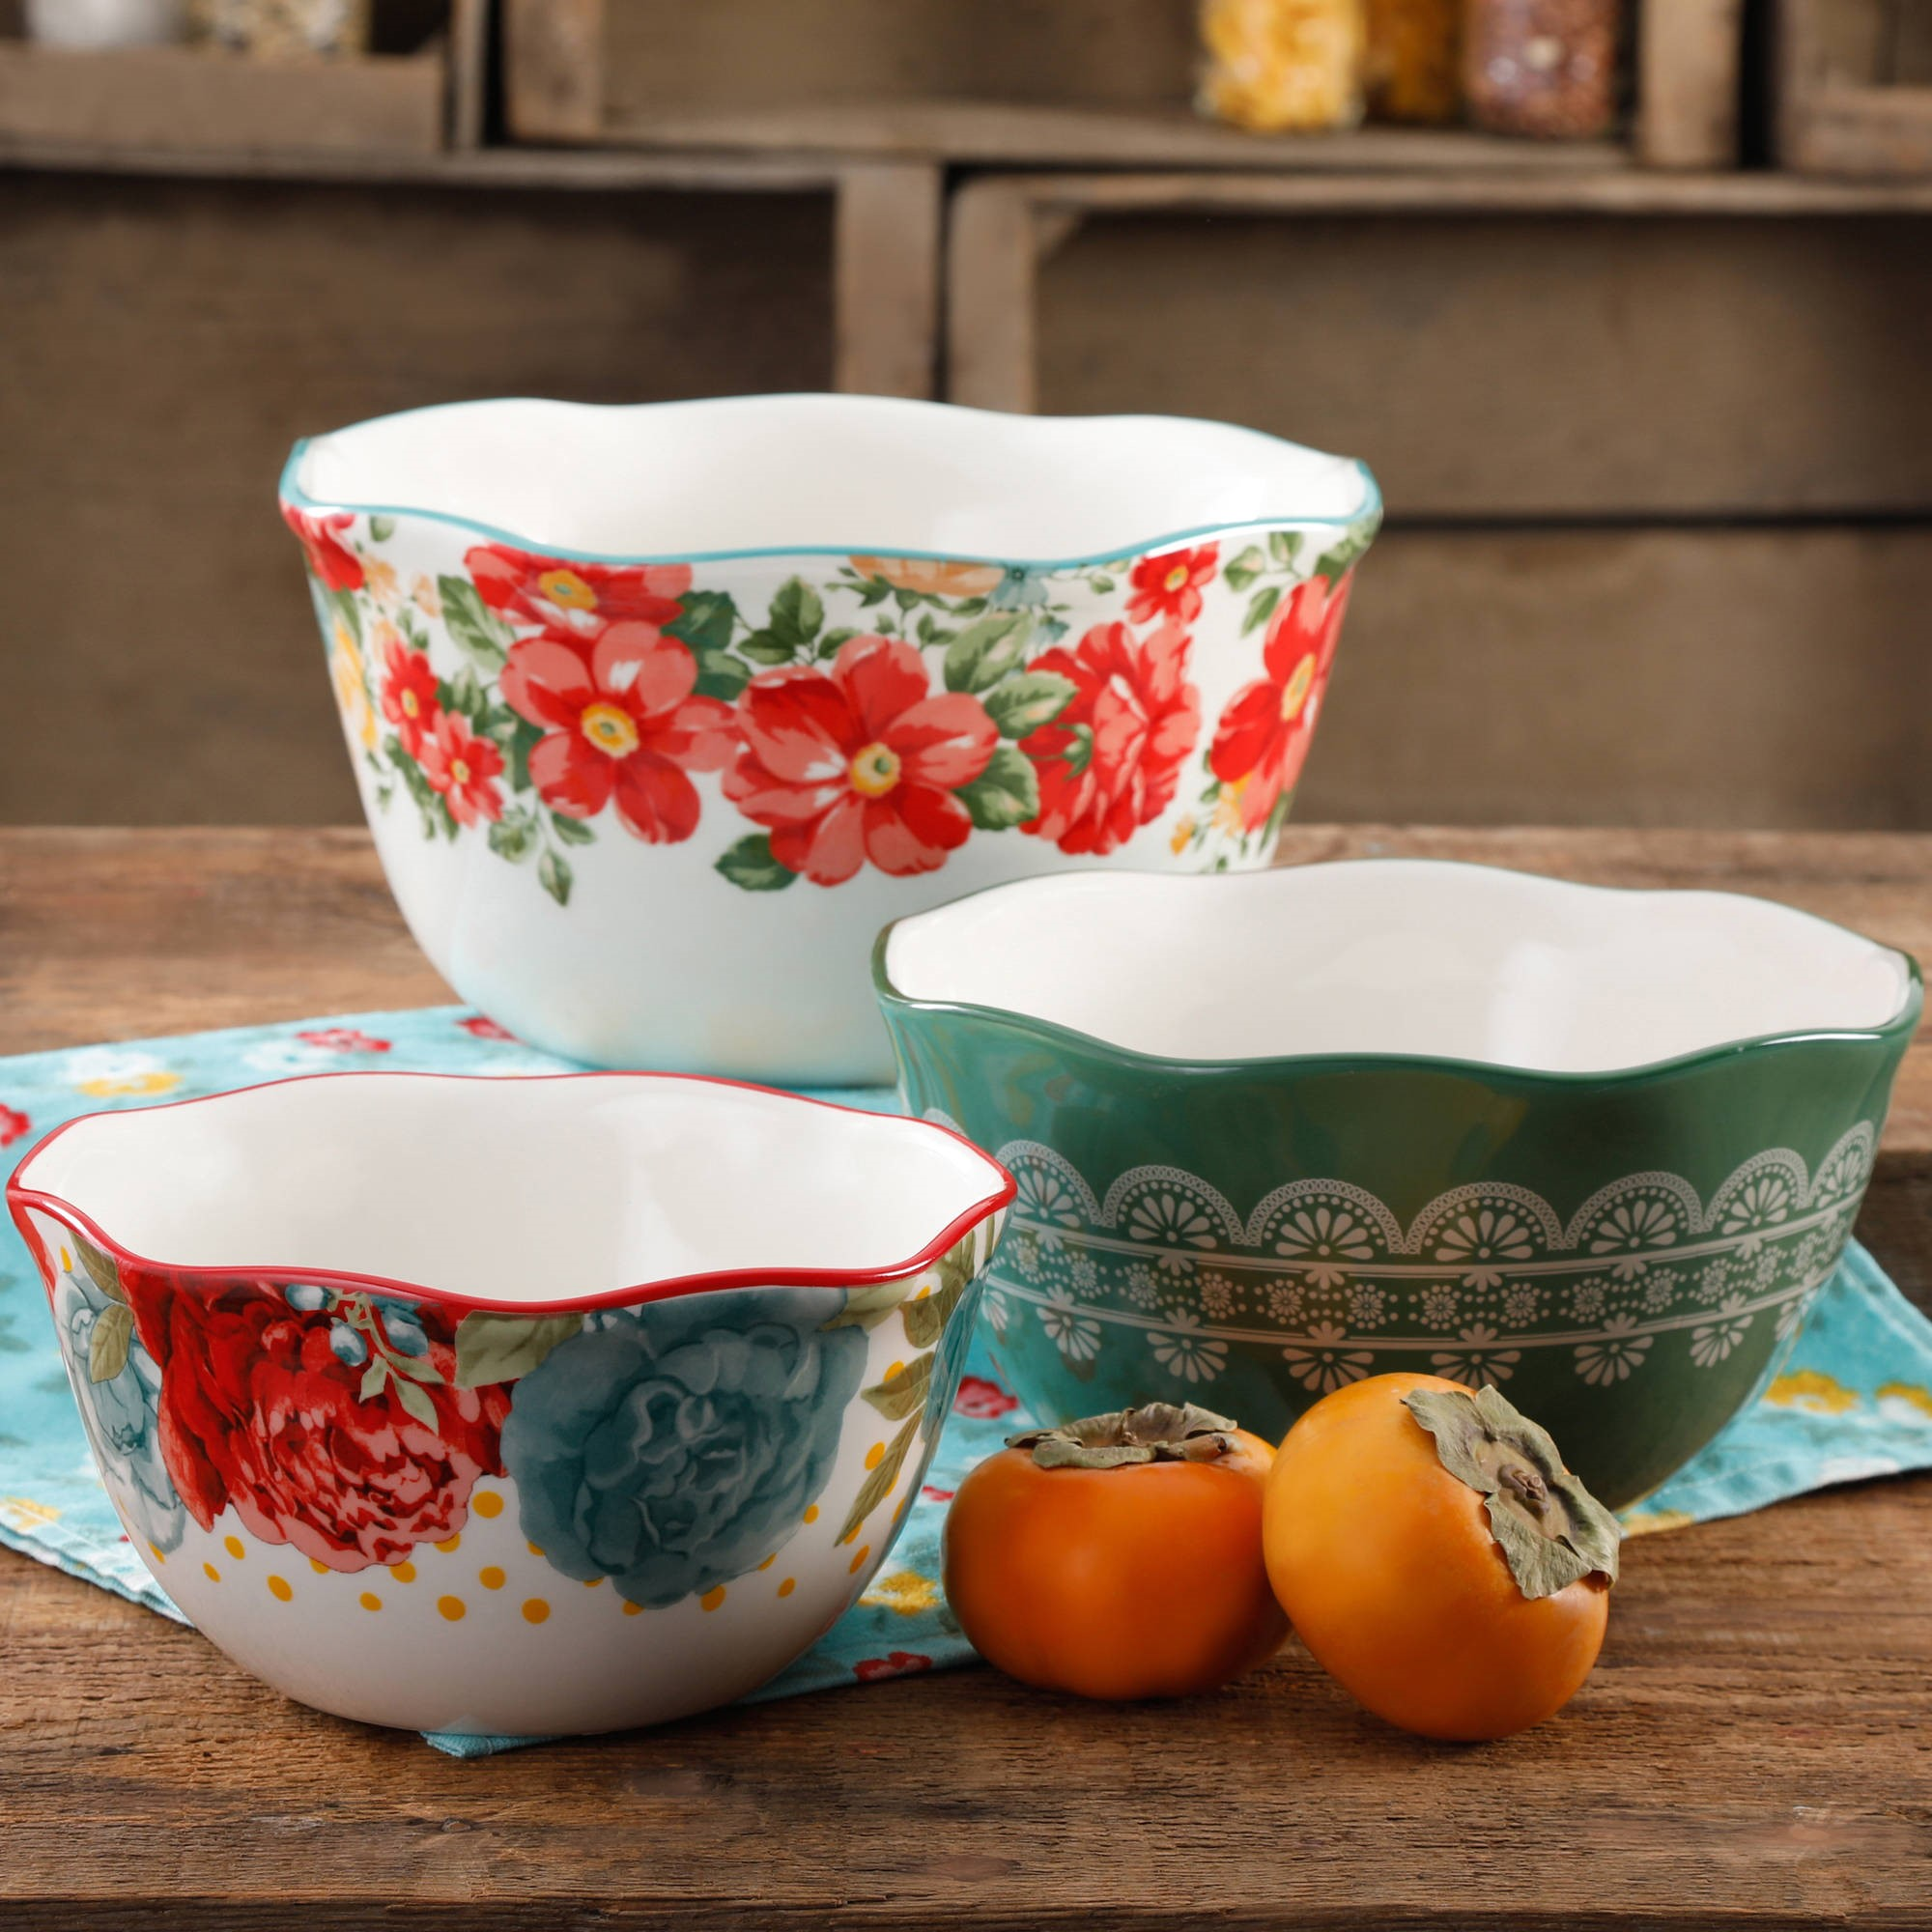 The Pioneer Woman Vintage Floral 3-Piece Nesting Bowl Set